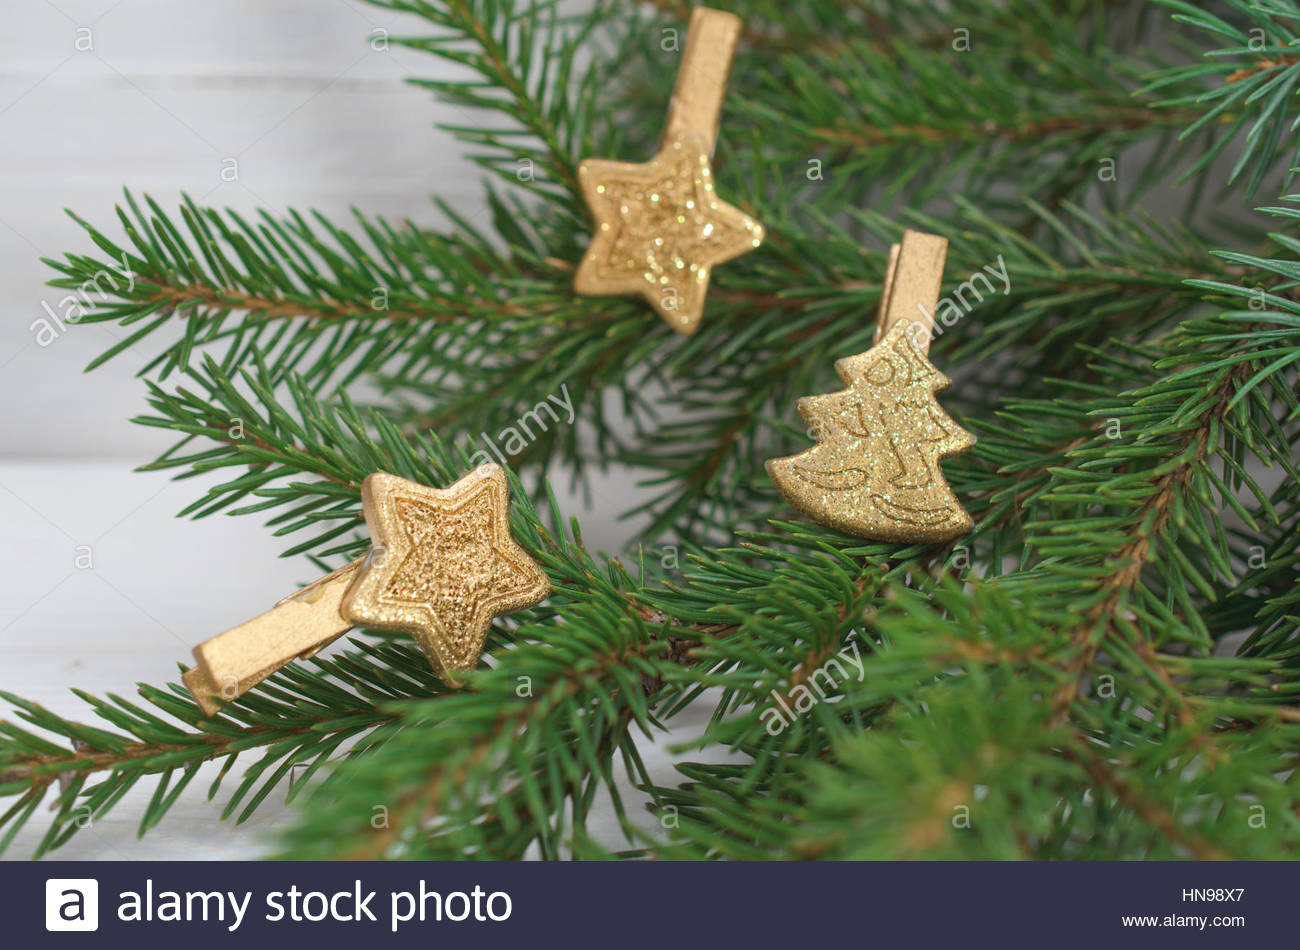 Pine Branches And Wooden Christmas Decorations On A White Background - Stock Image